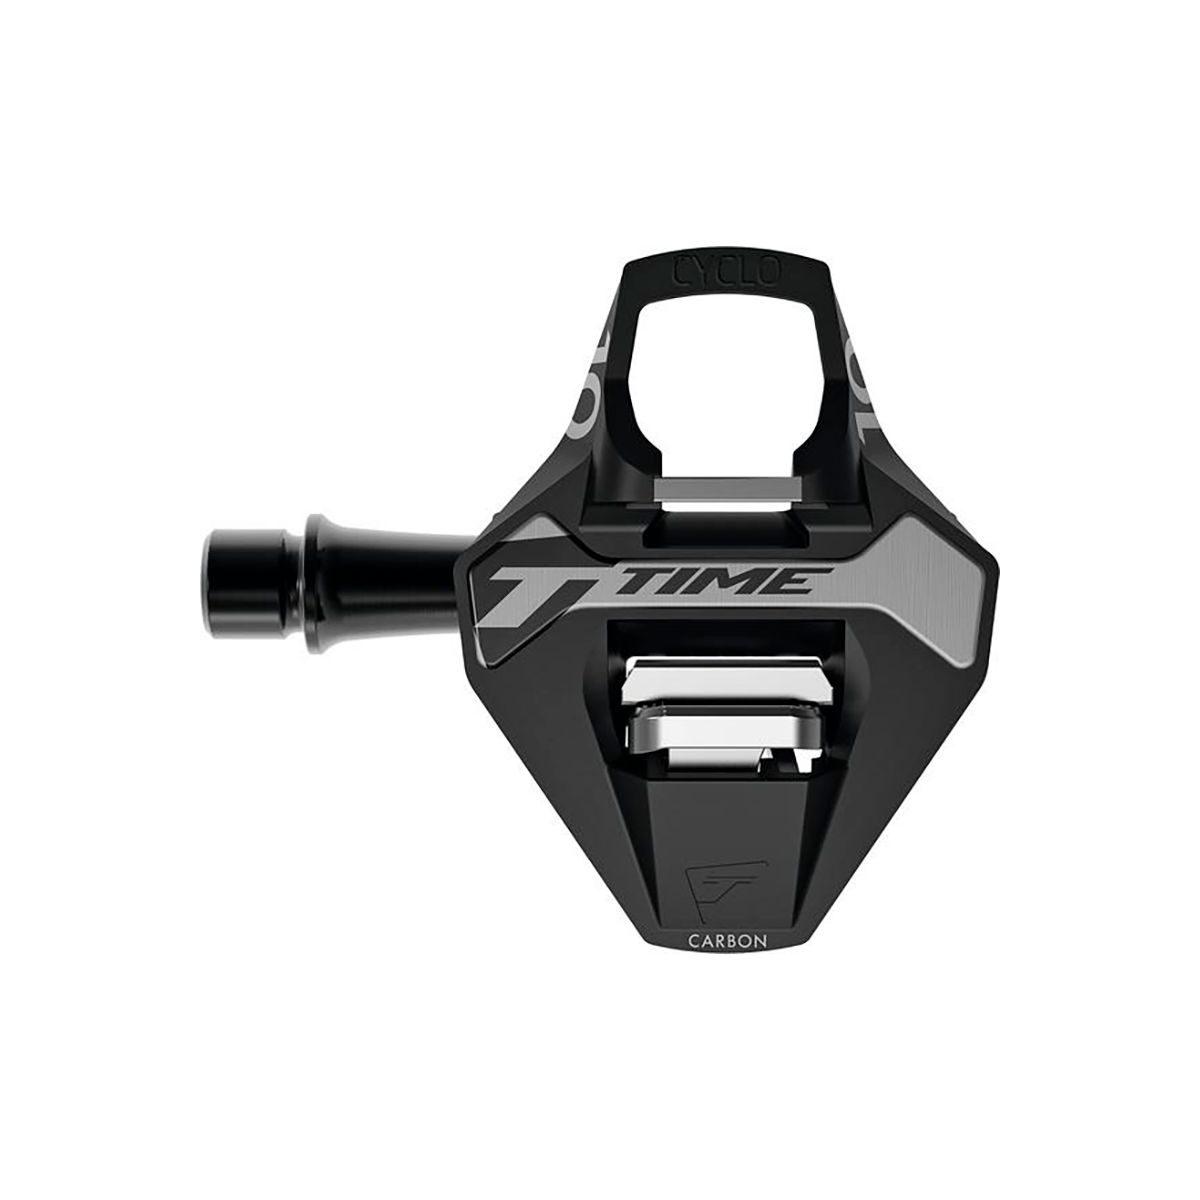 Cyclo 10 Carbon Gravel/Cross Pedals